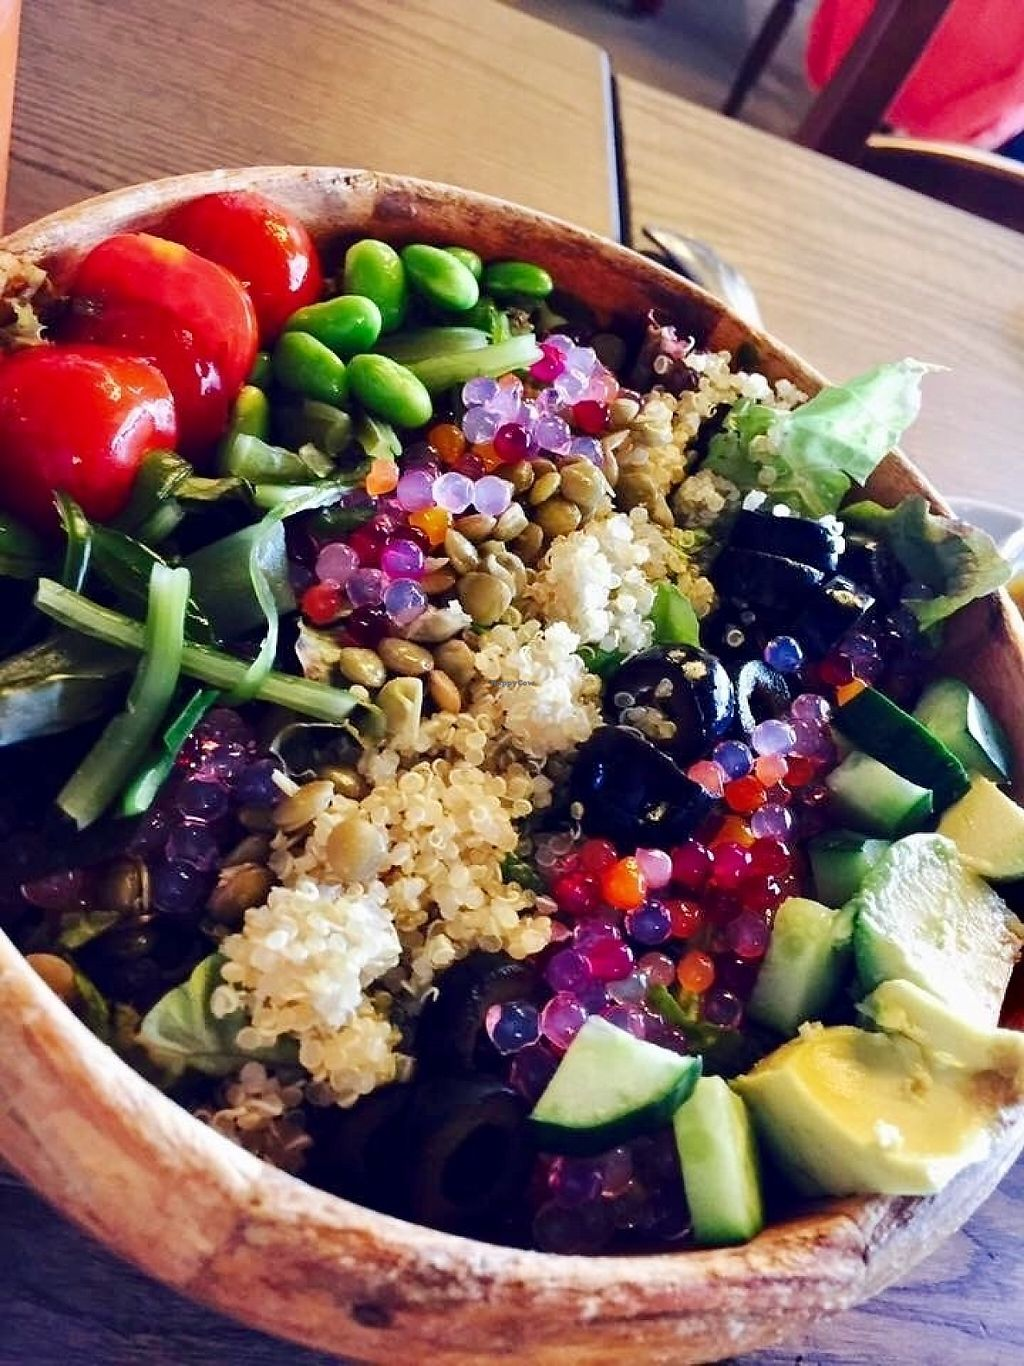 "Photo of Cafe La Boheme  by <a href=""/members/profile/paulkates"">paulkates</a> <br/>Vegan tofu salad <br/> June 7, 2017  - <a href='/contact/abuse/image/93493/266560'>Report</a>"